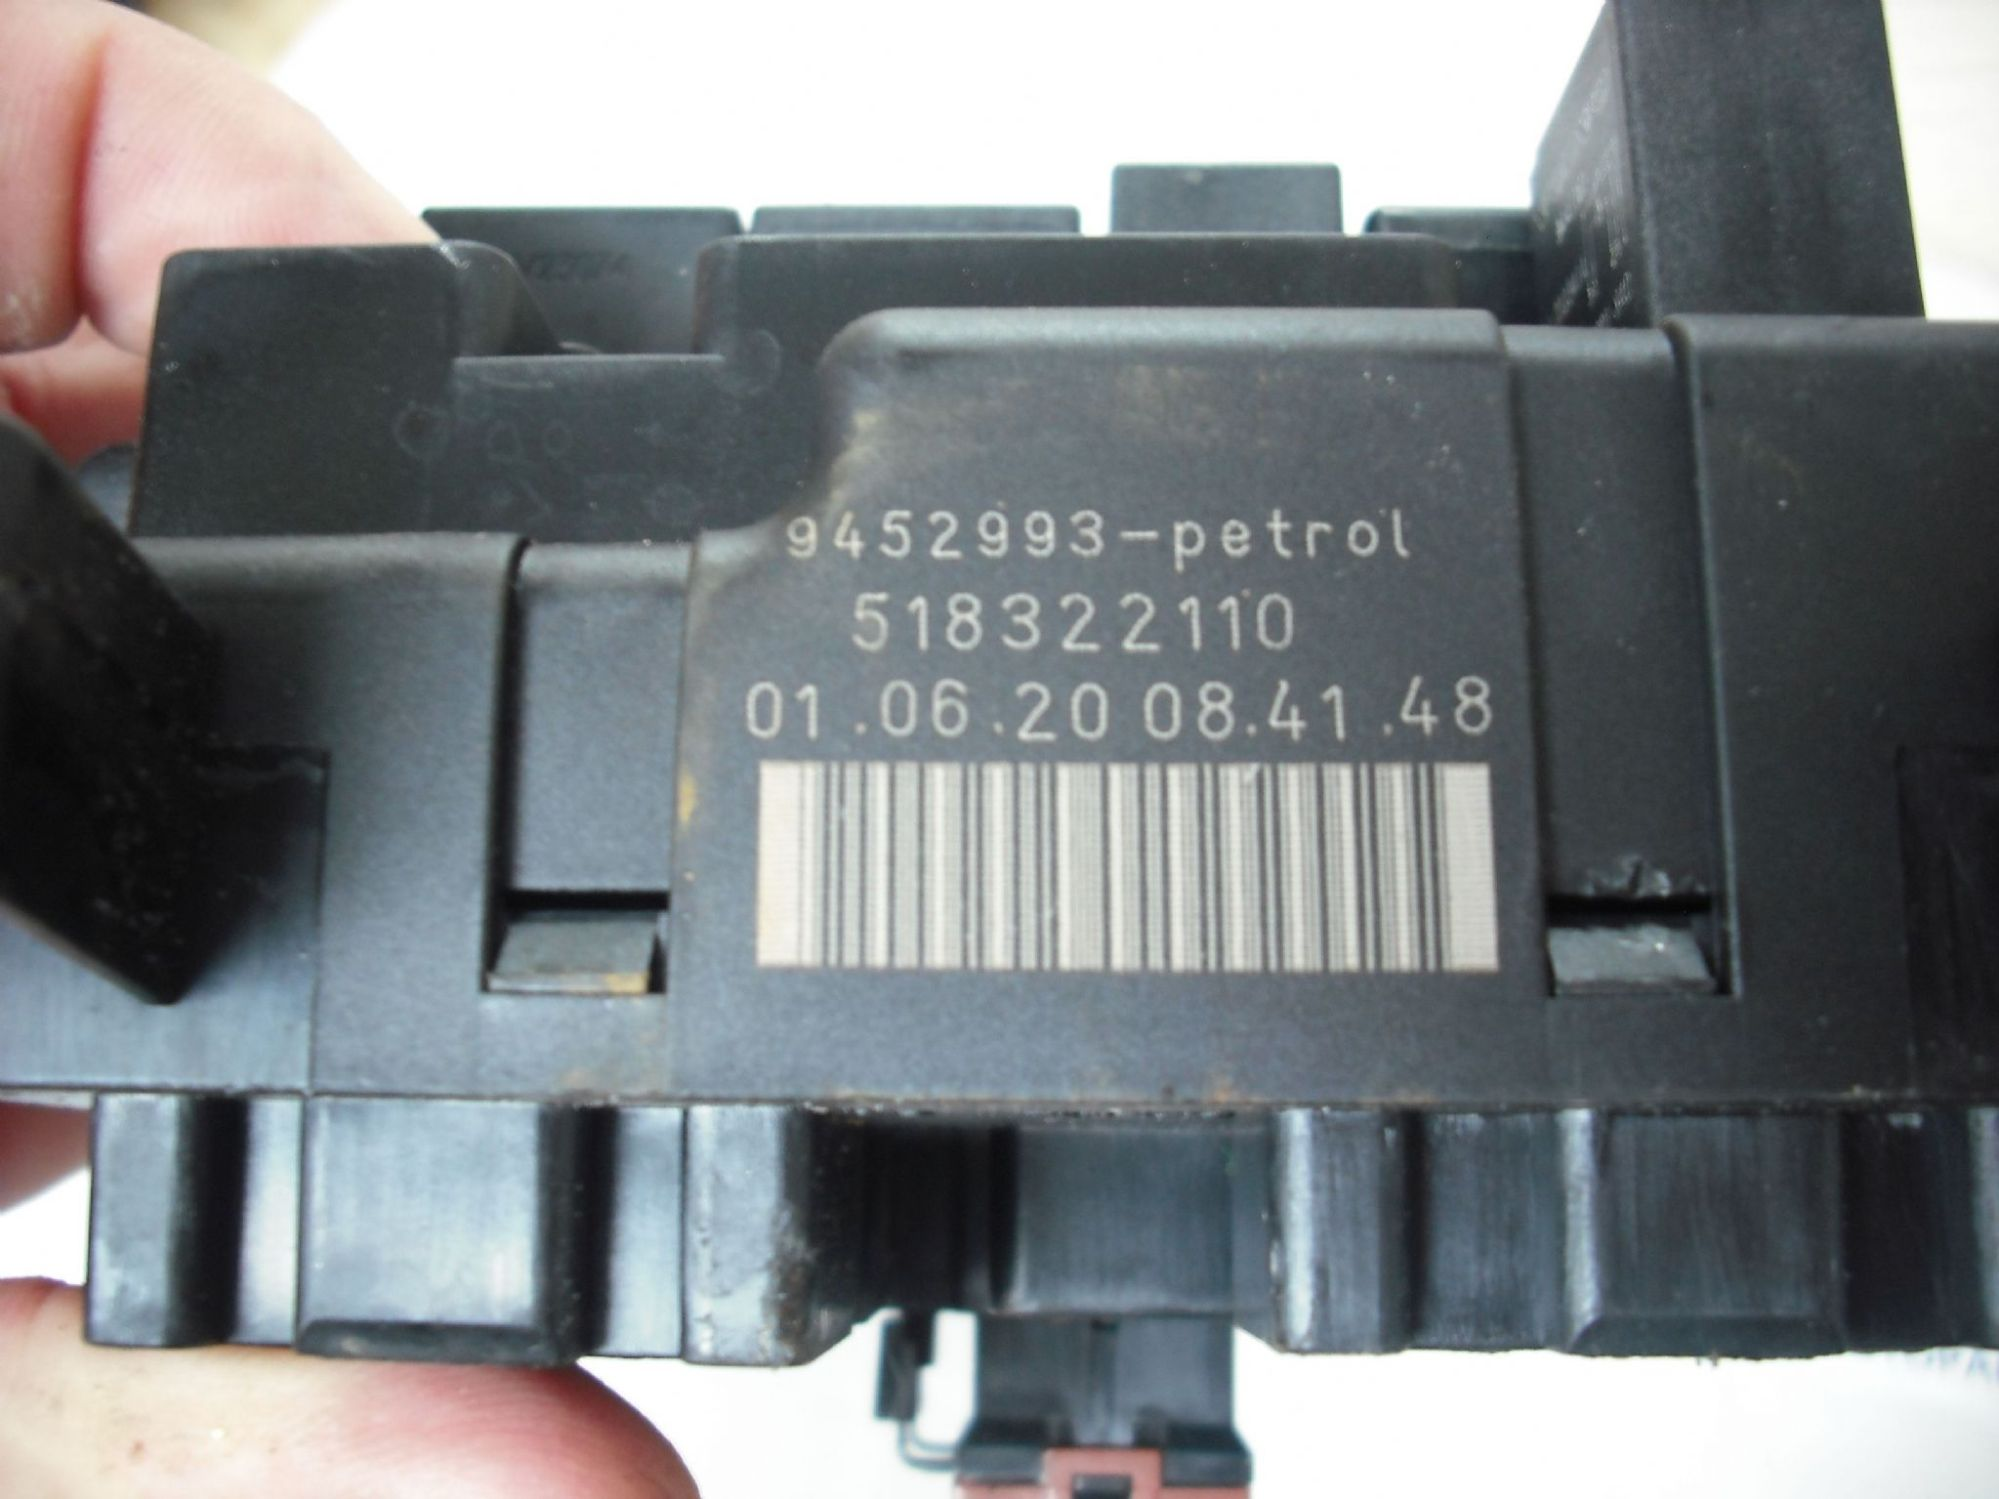 hight resolution of volvo s60 s80 v70 engine bay fuse box controller petrol 9452993 518322110